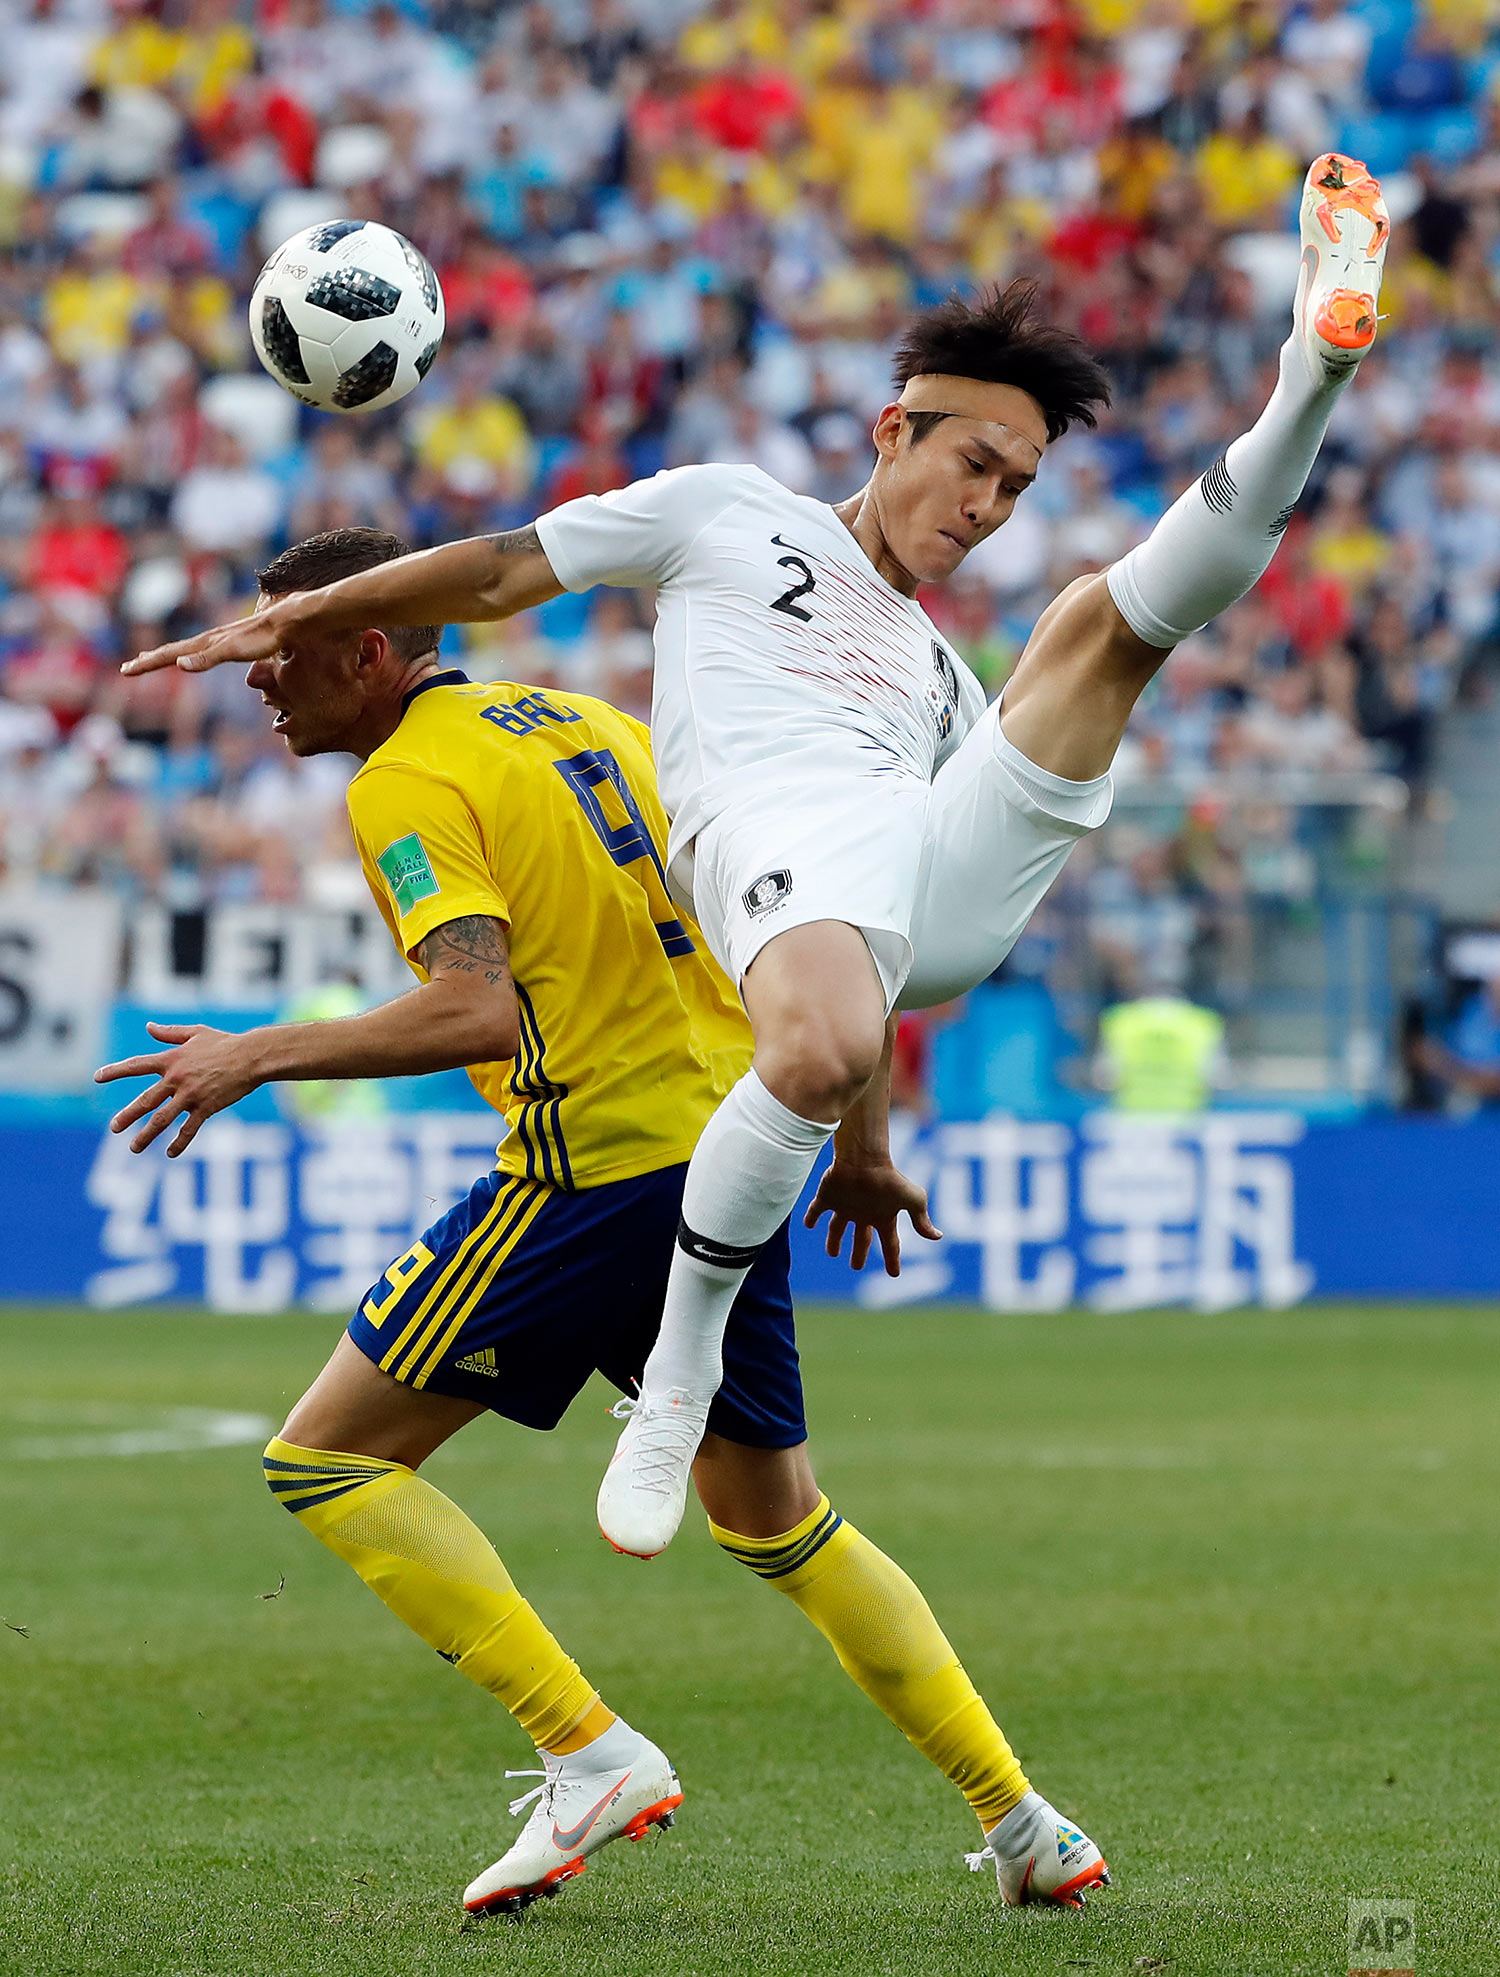 South Korea'sLeeYong is challenged by Sweden's Marcus Berg during the group F match between Sweden and South Korea at the 2018 soccer World Cup in the Nizhny Novgorod stadium in Nizhny Novgorod, Russia, Monday, June 18, 2018. (AP Photo/Pavel Golovkin)